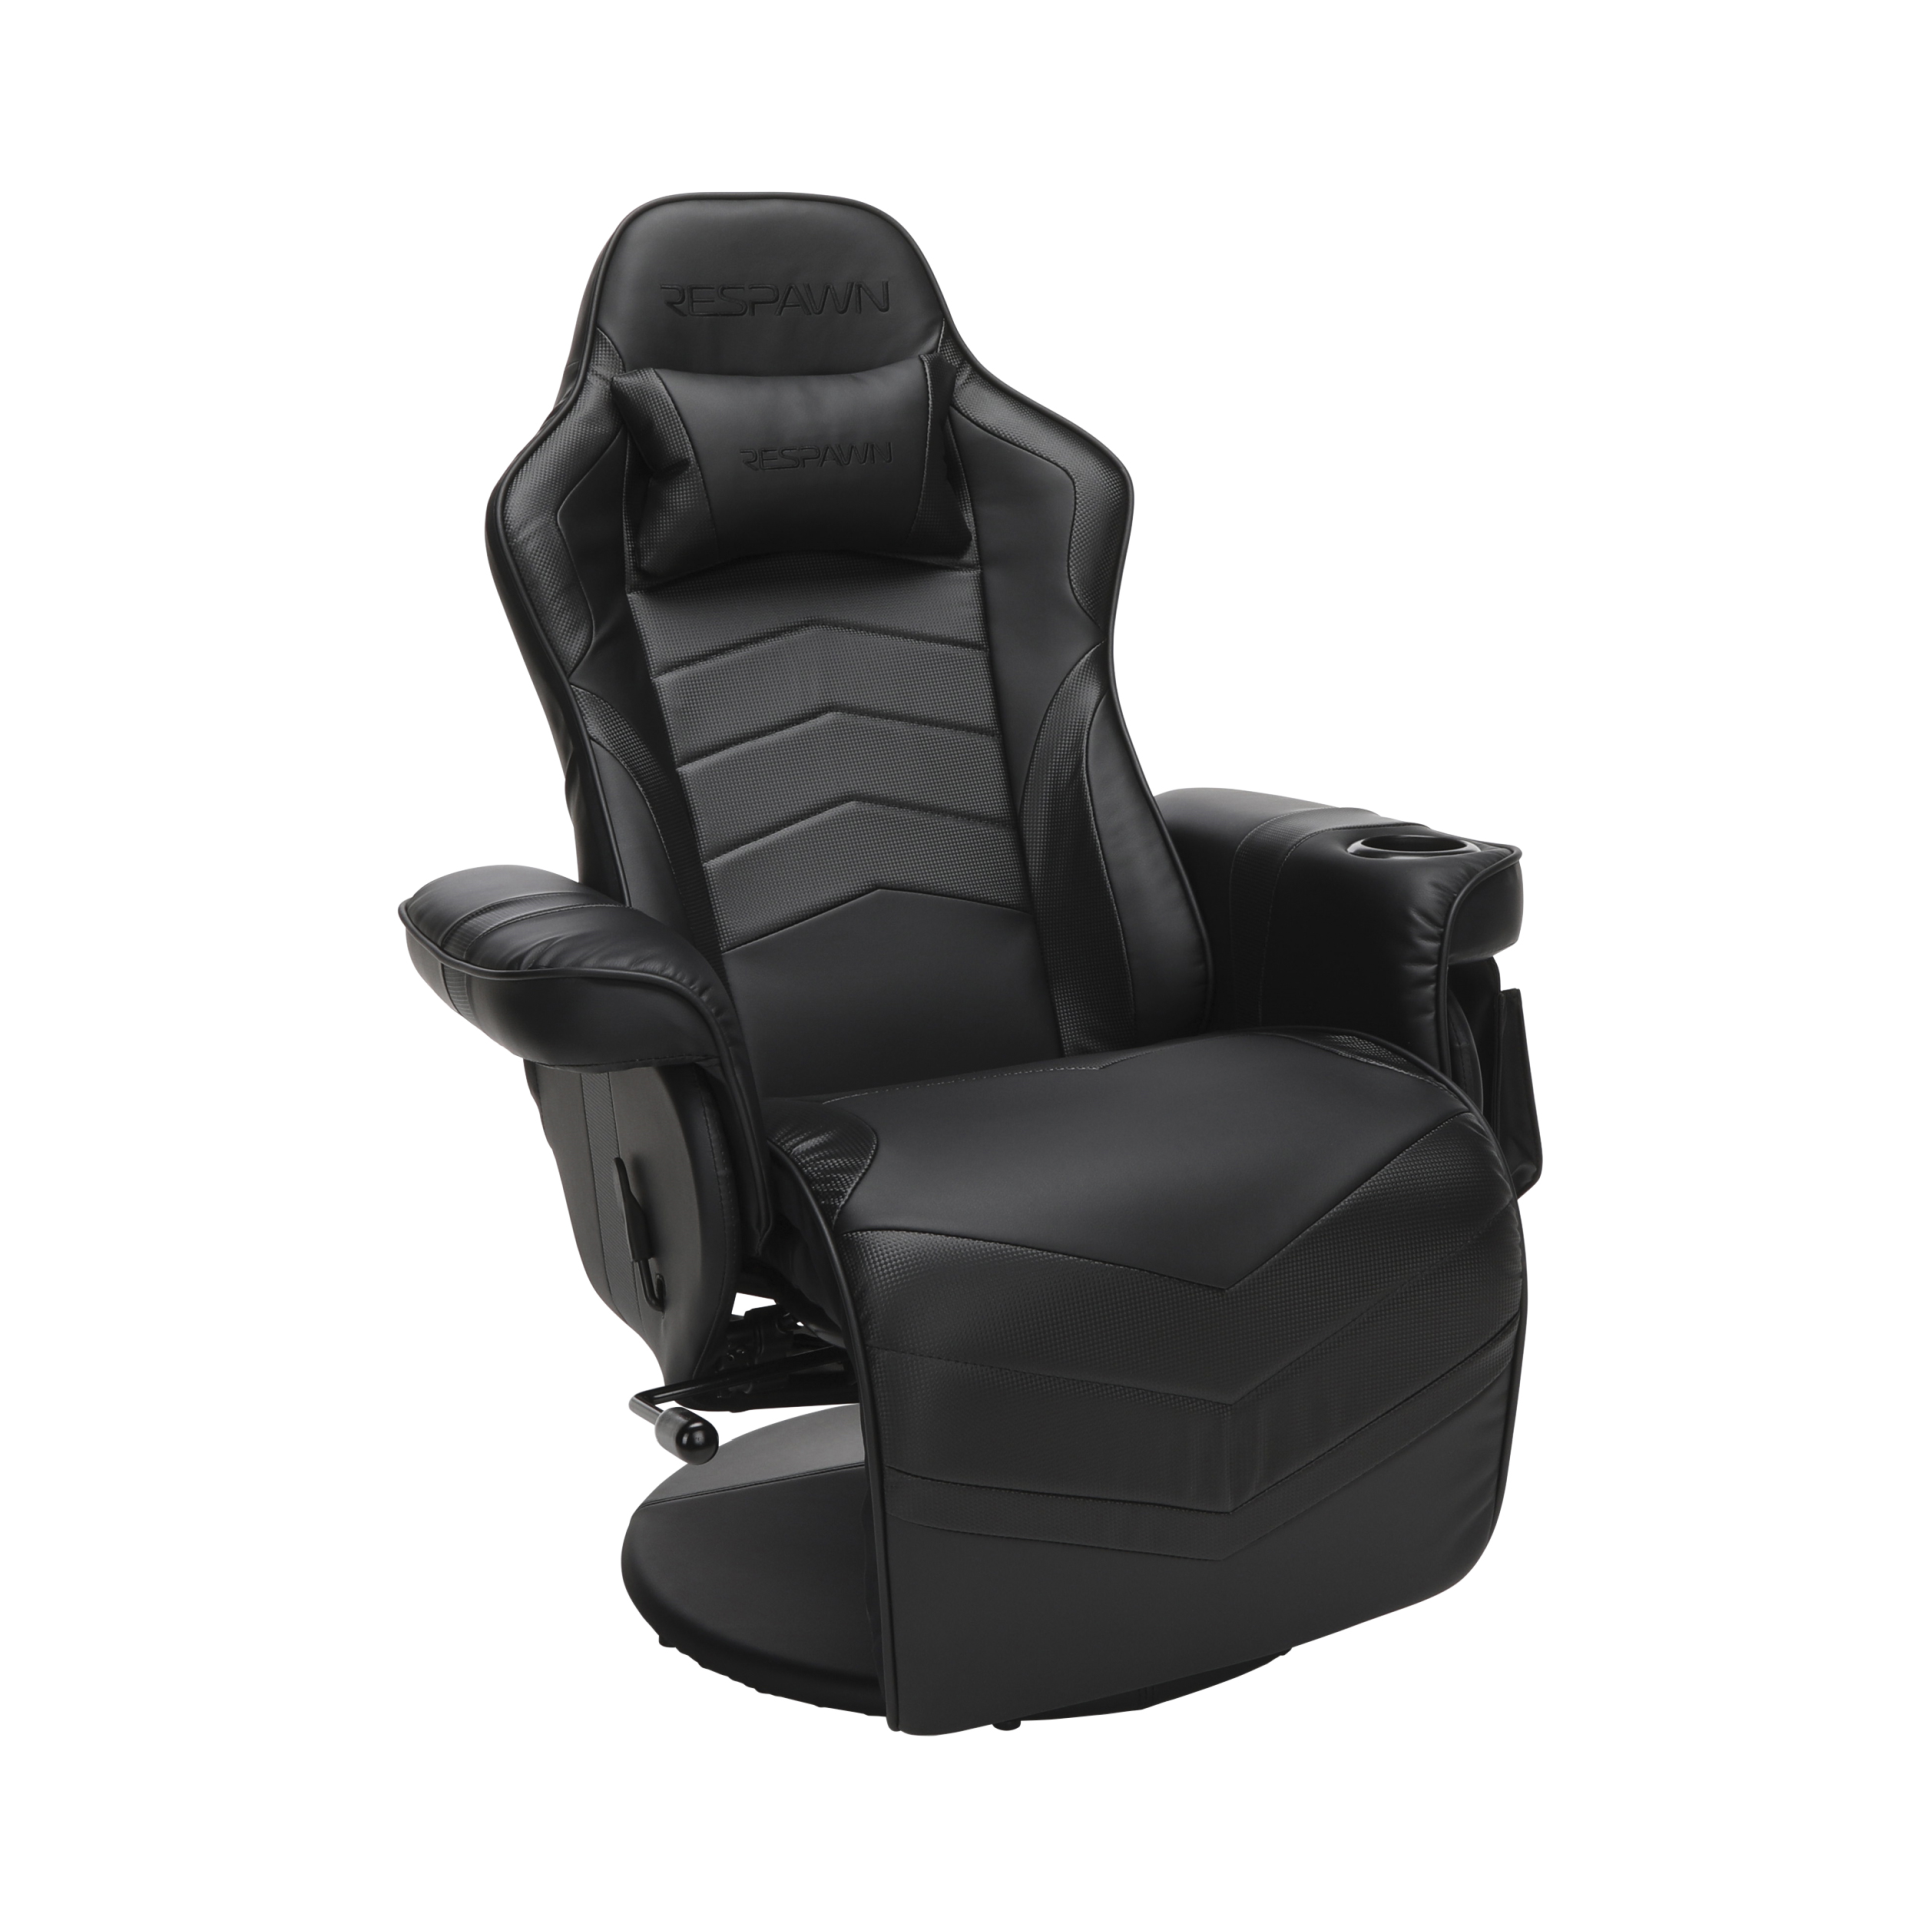 Respawn Rsp 900 Gaming Chair Review Ultra Comfy Gaming